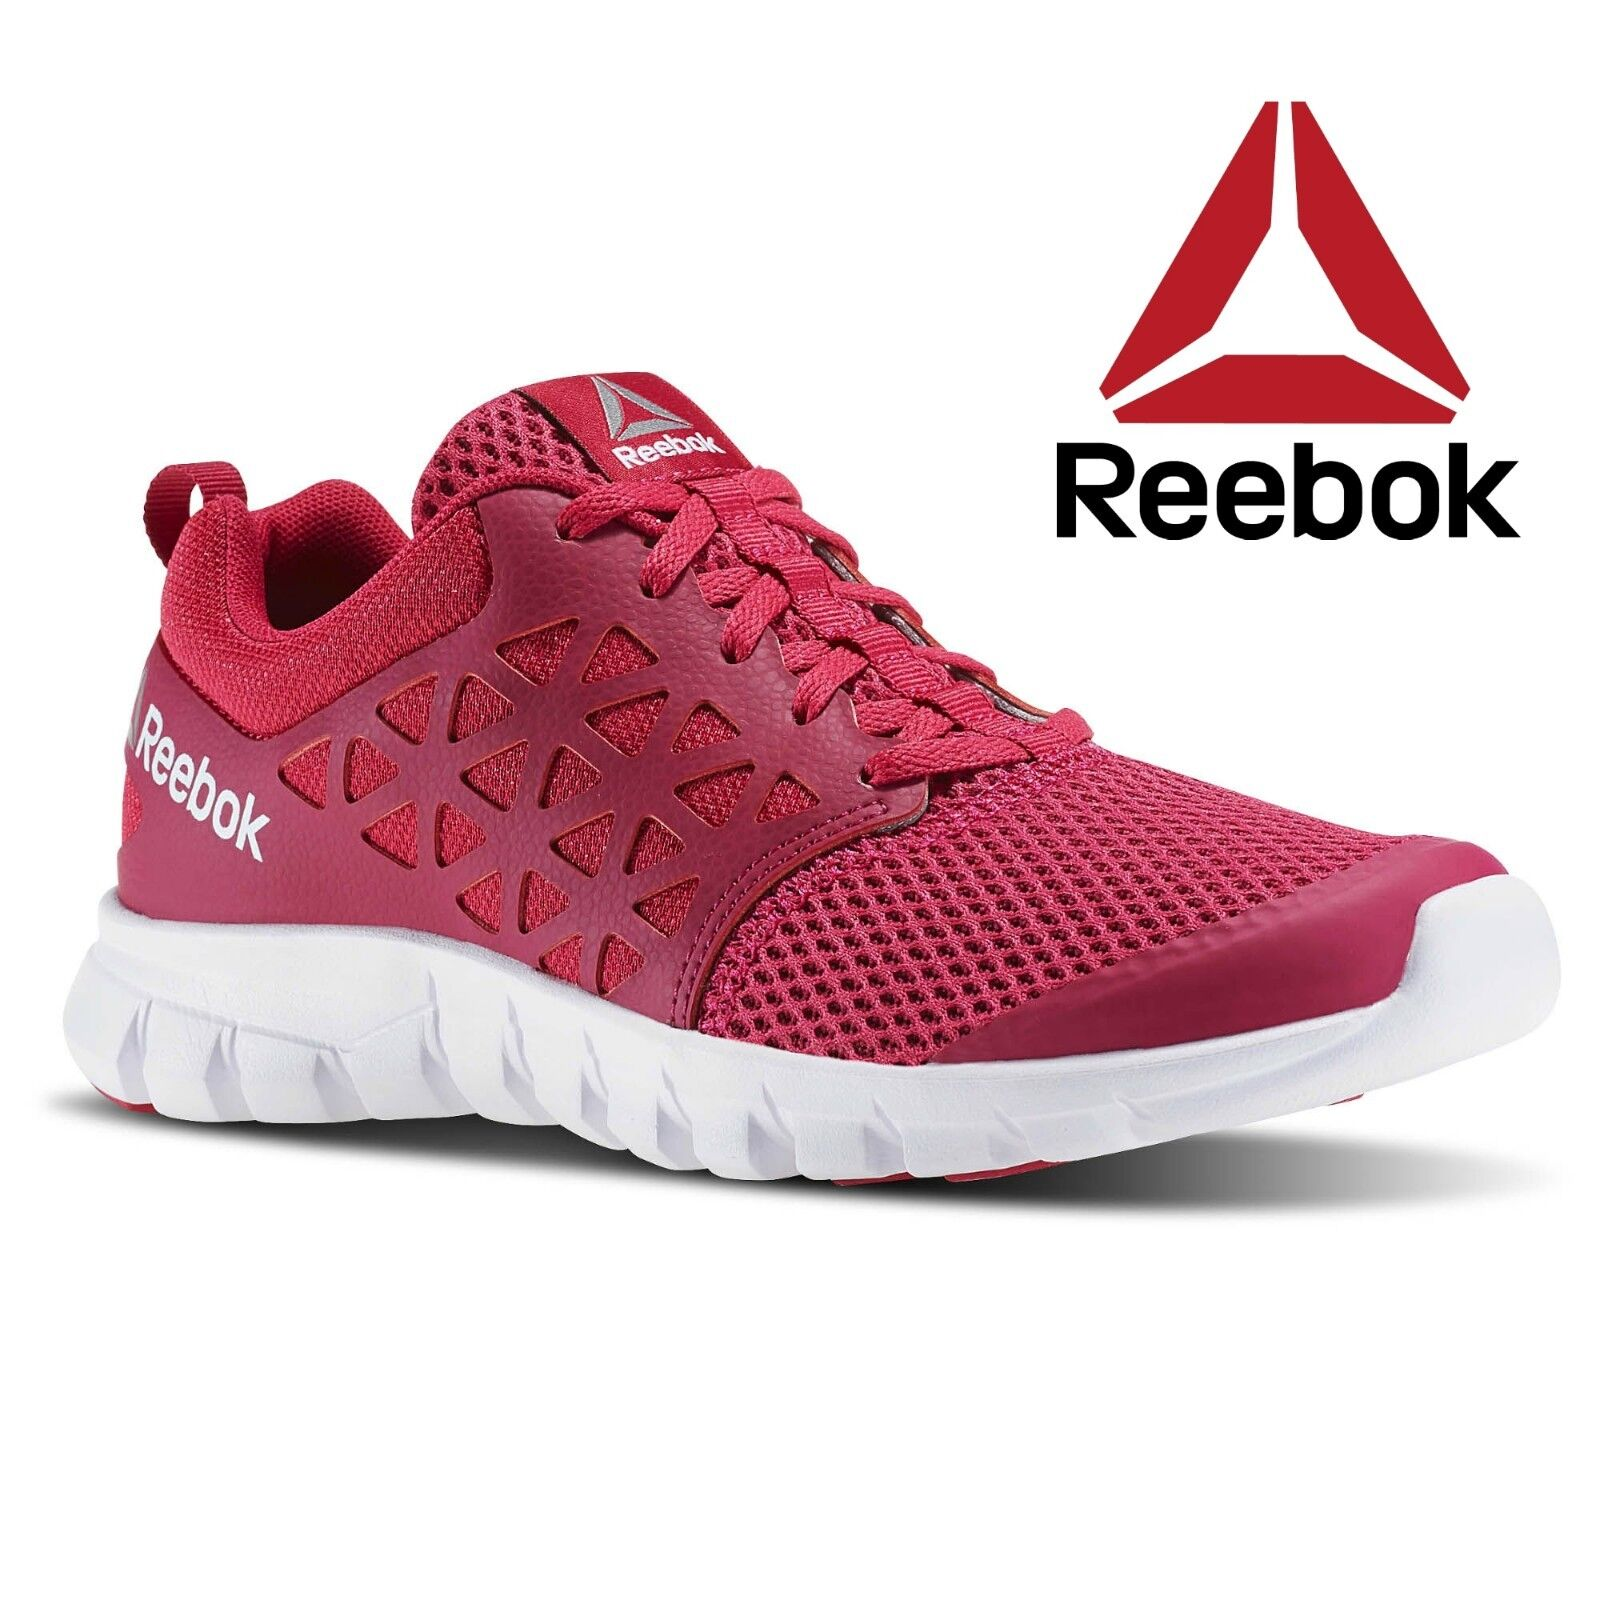 Reebok Women's Sublite Xt Cushion 2.0 Mt Running shoes Trainers Gym Free Postage